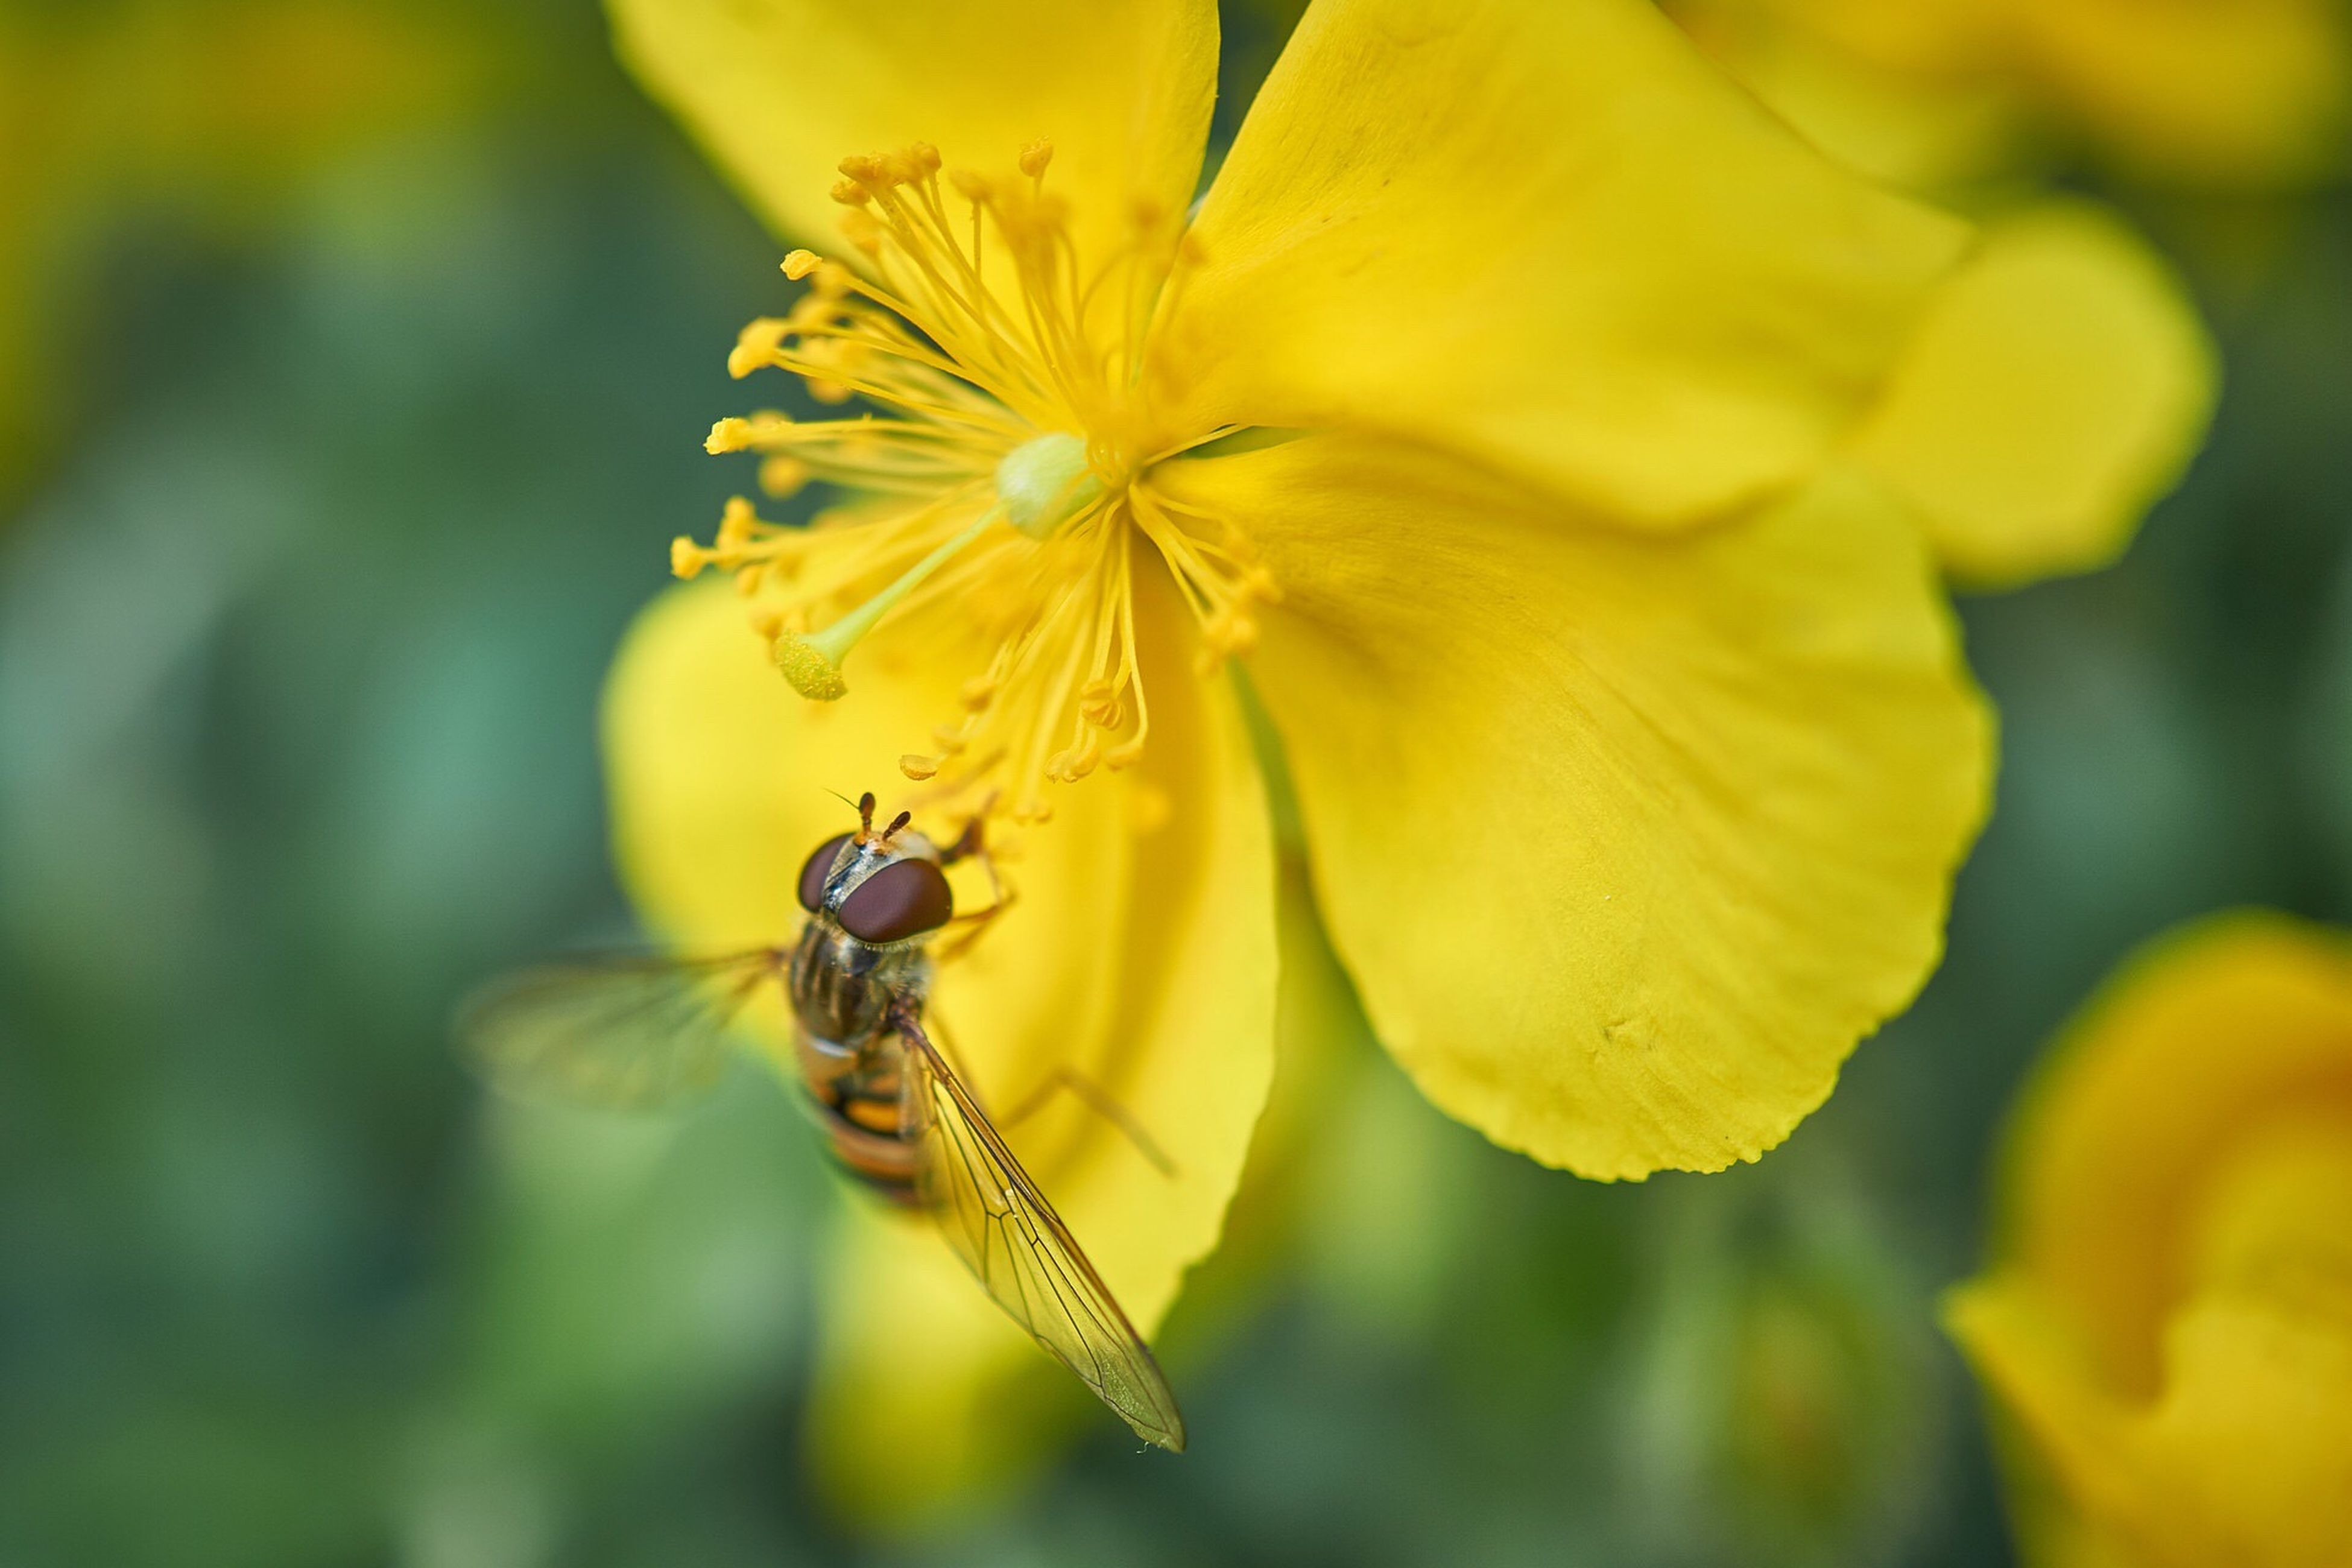 flower, insect, animal themes, one animal, petal, animals in the wild, yellow, wildlife, freshness, fragility, pollination, close-up, flower head, beauty in nature, focus on foreground, nature, bee, growth, symbiotic relationship, pollen